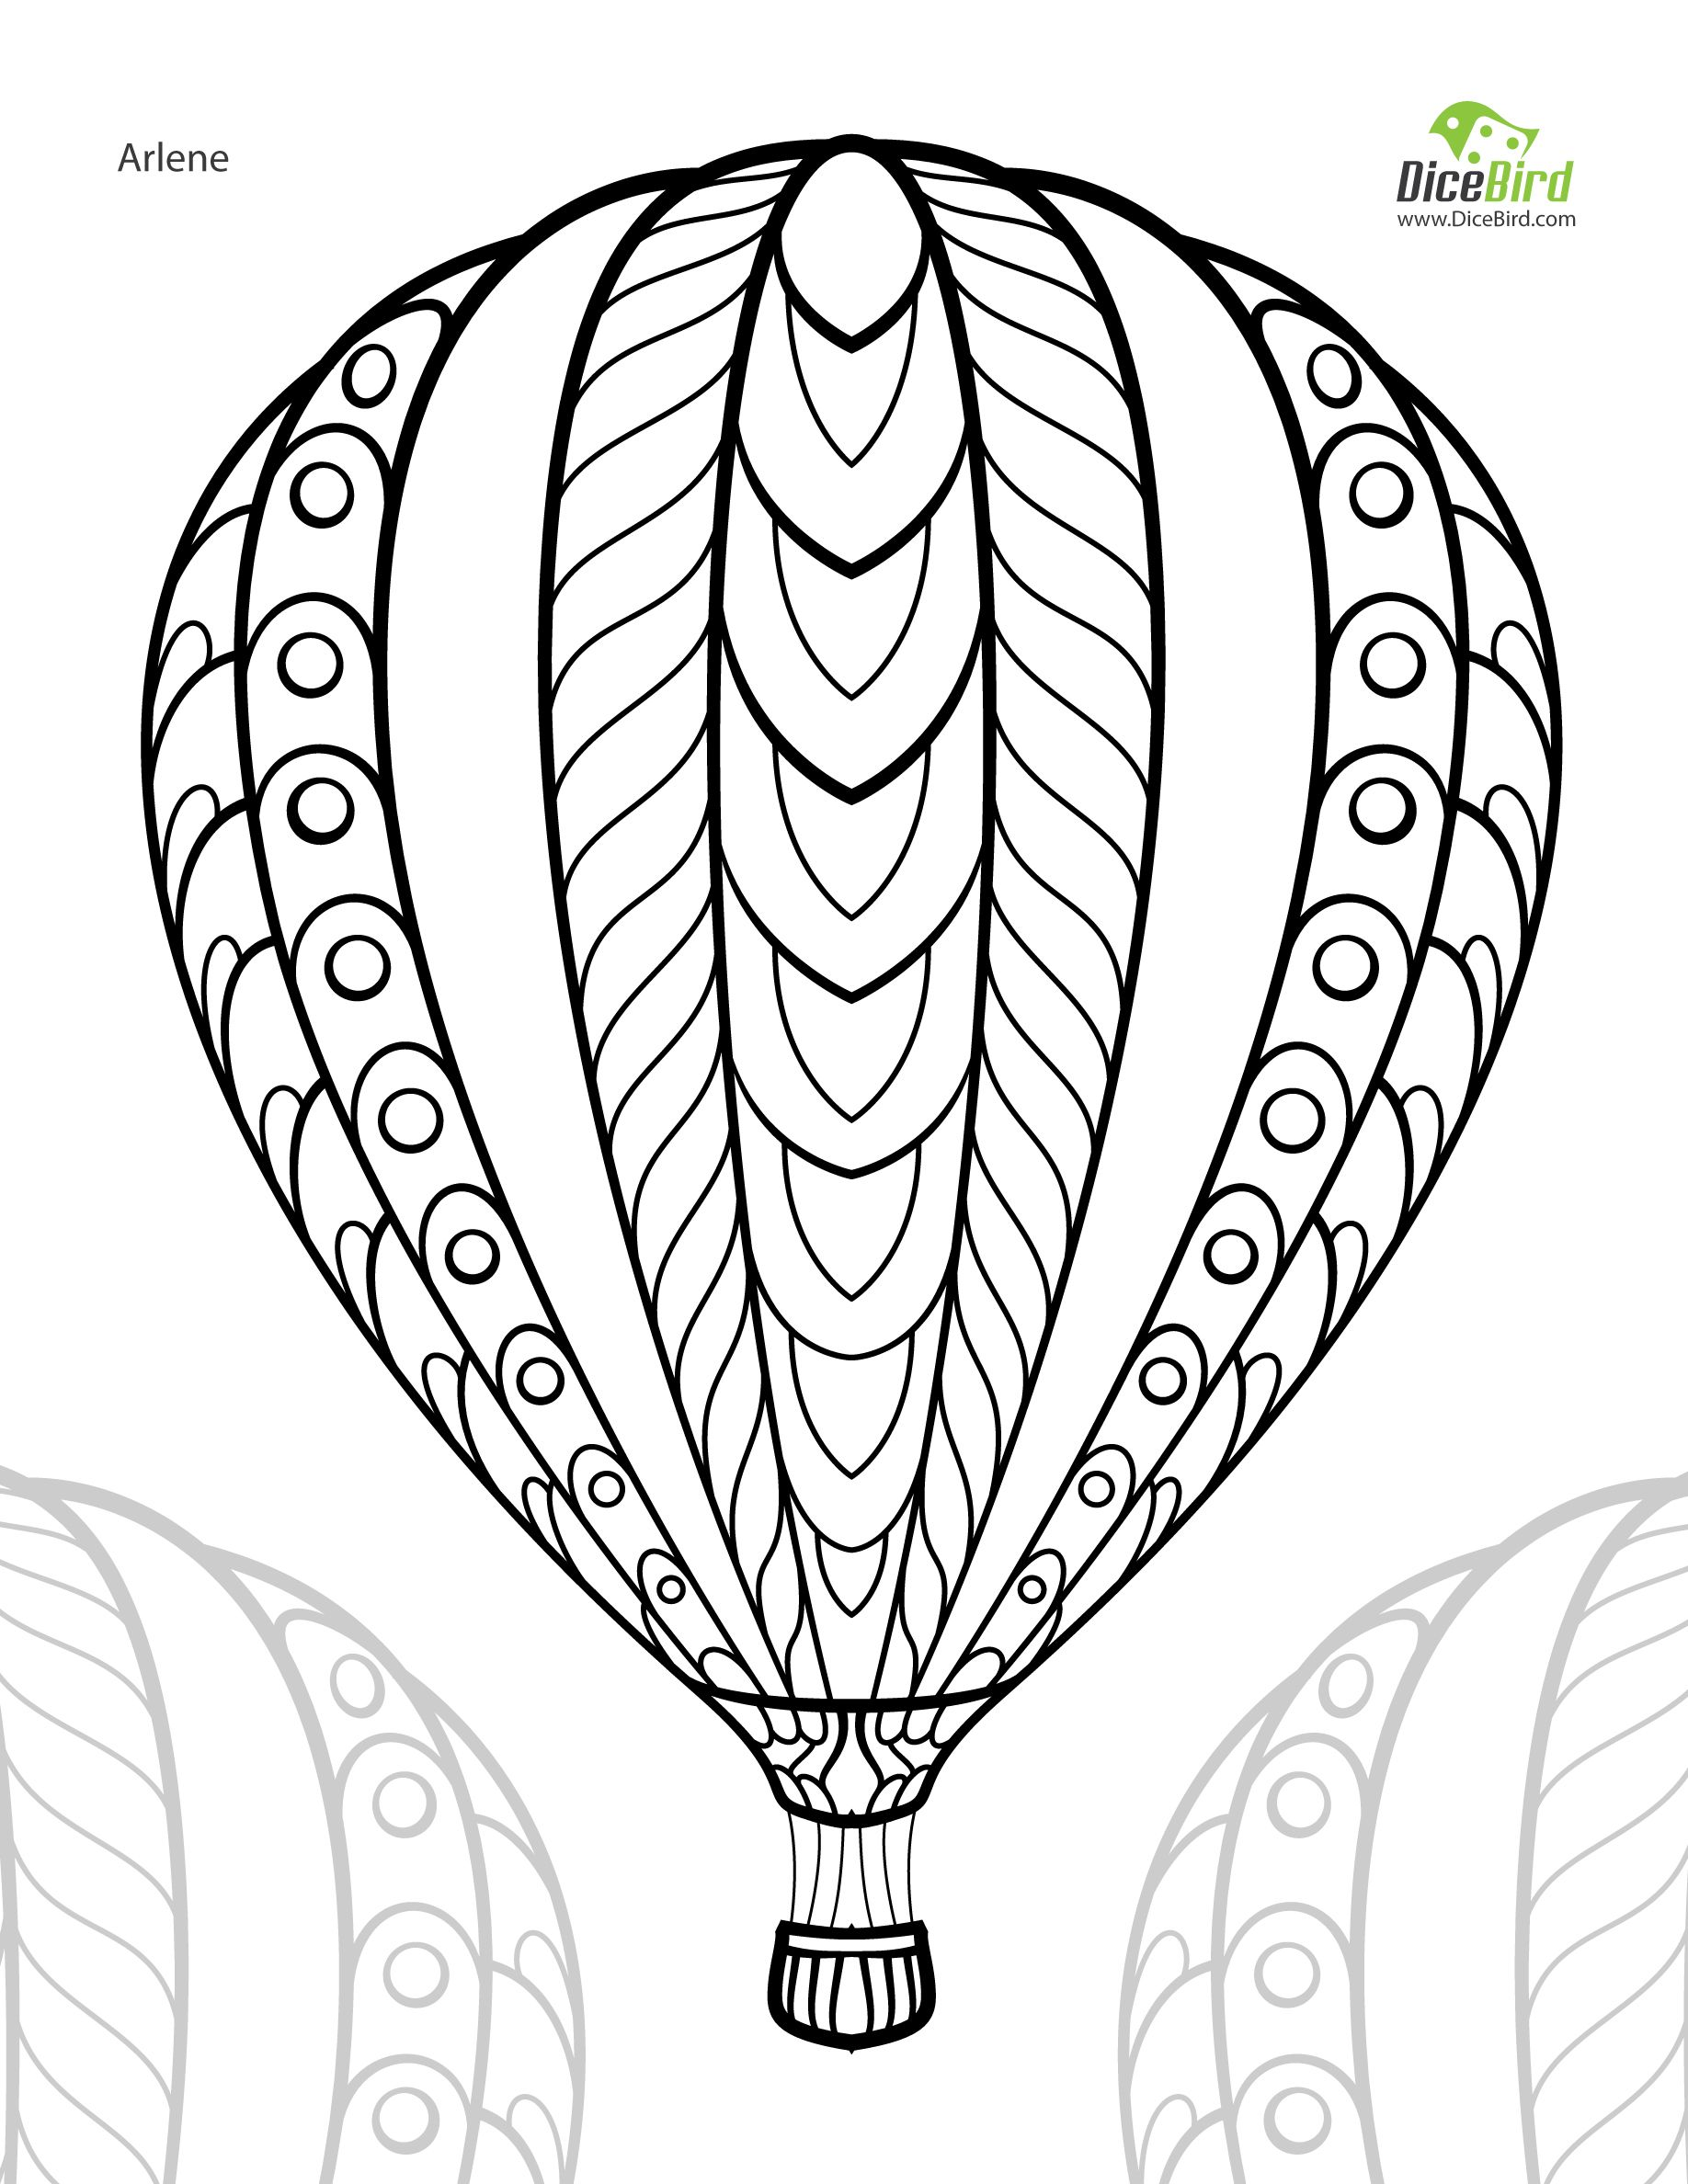 Hot air balloon adult coloring sheets dicebird free printable coloring pages